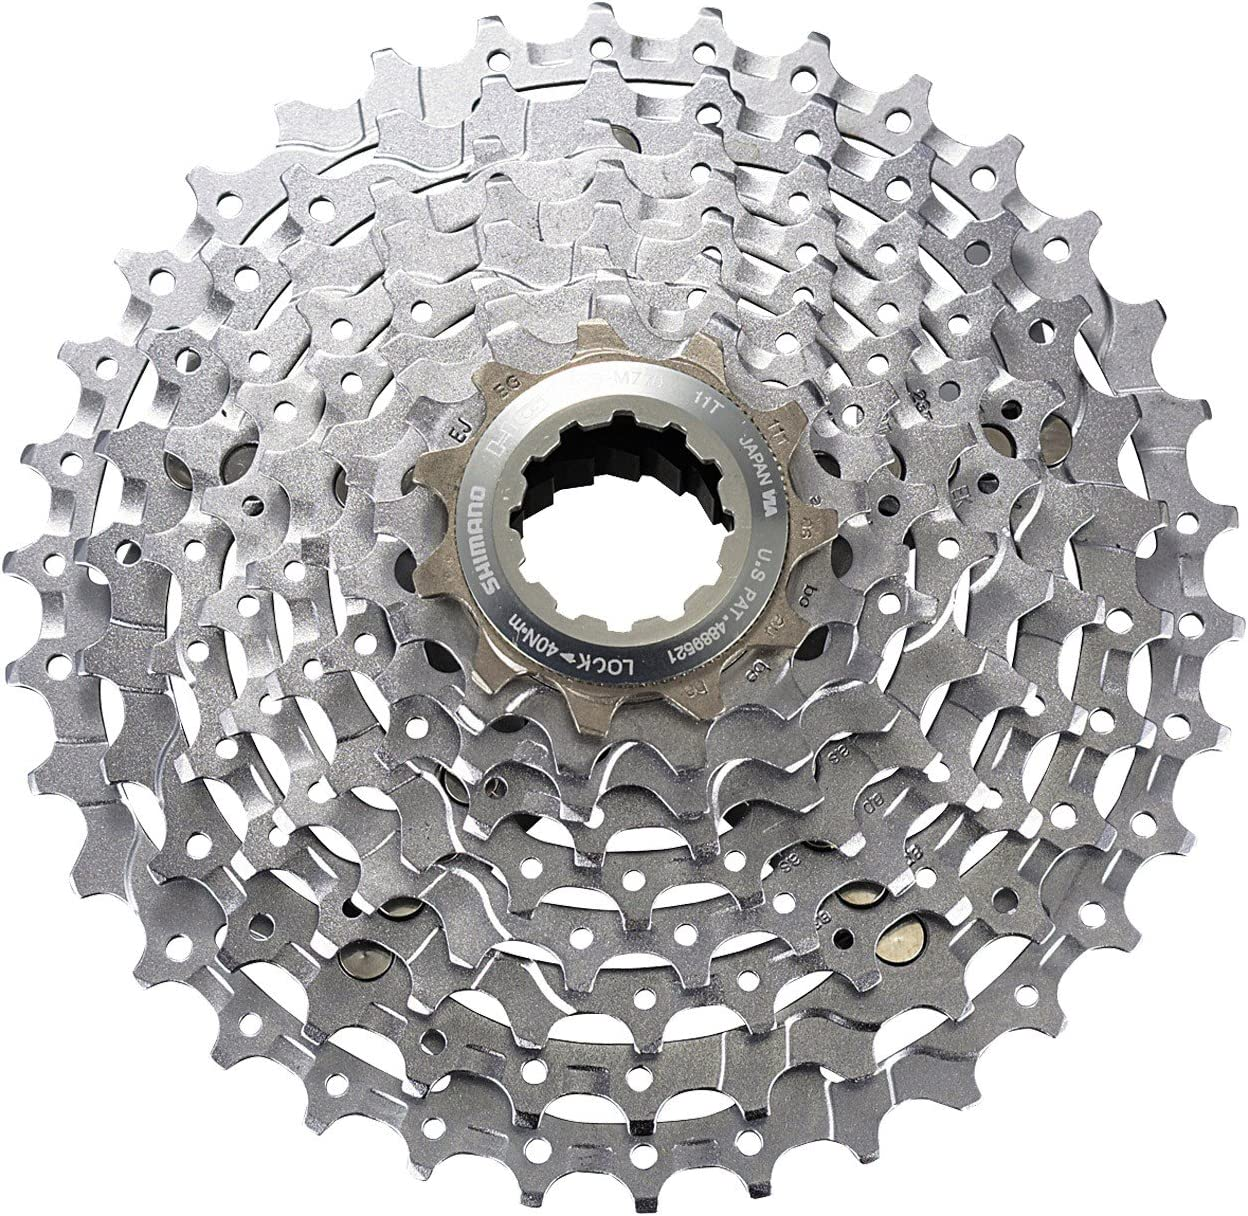 Shimano Deore XT HG Cassette Lockring for 11T Top Cog